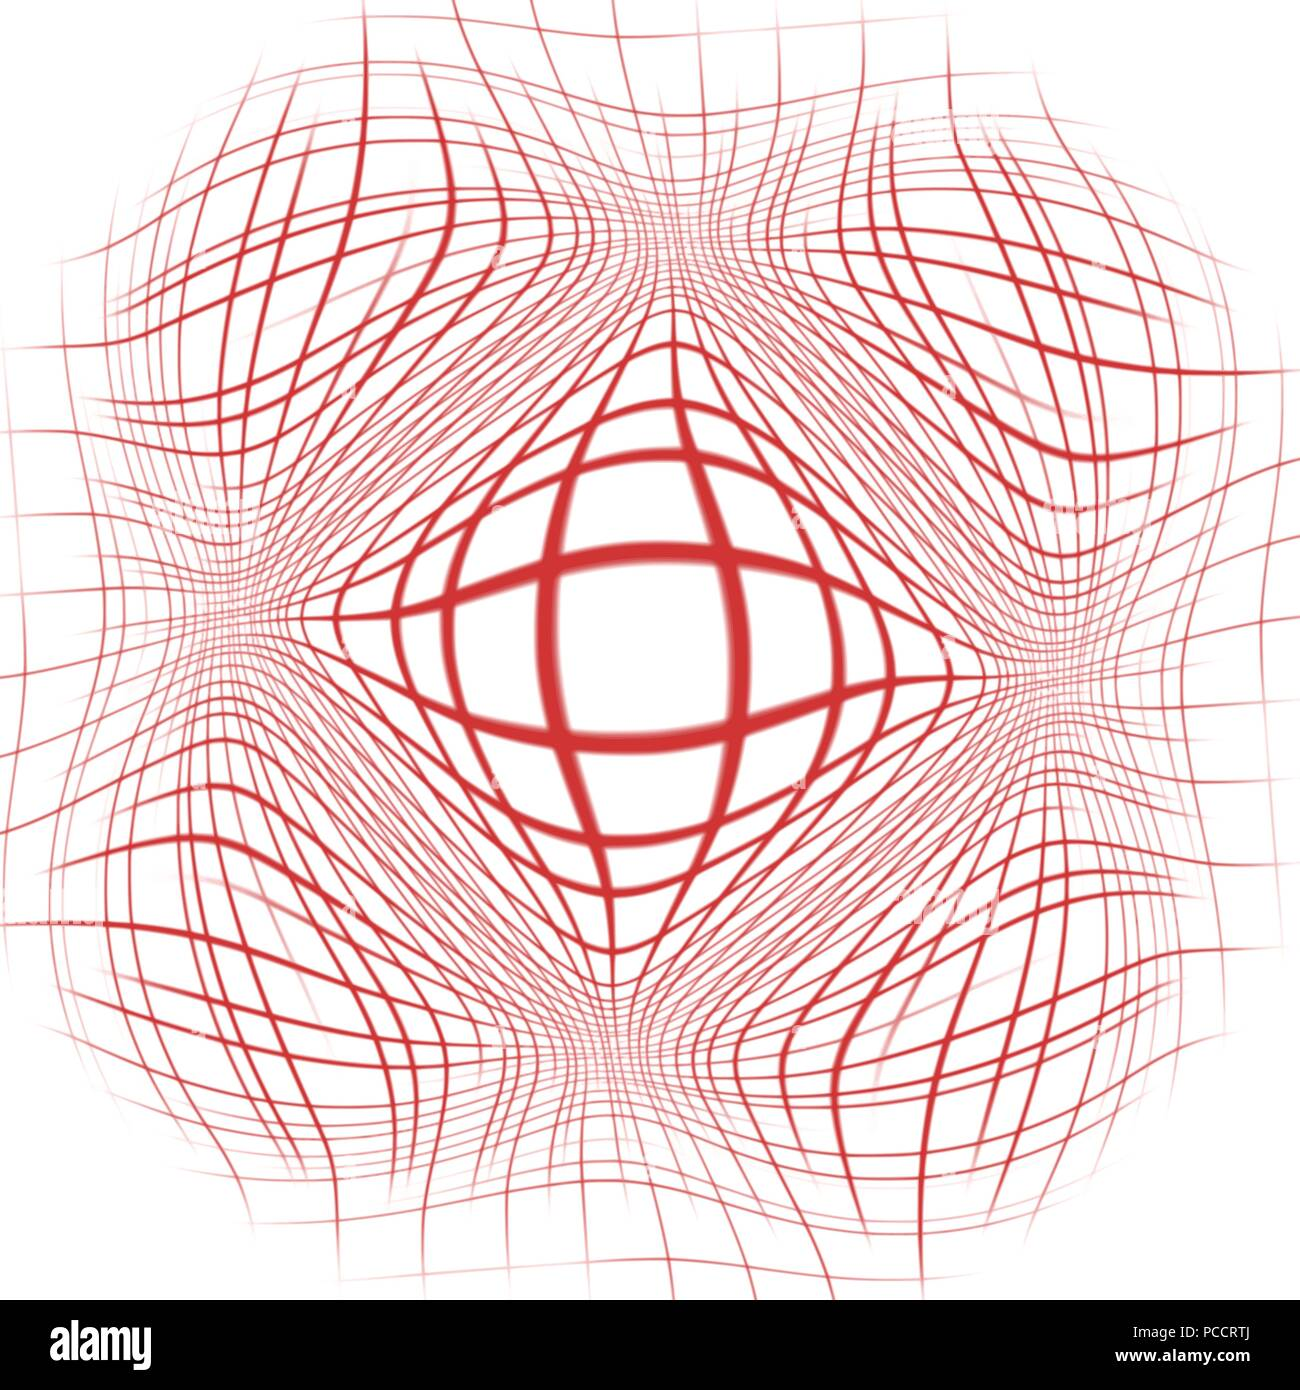 red abstract warped grid background pattern, vector illustration - Stock Image